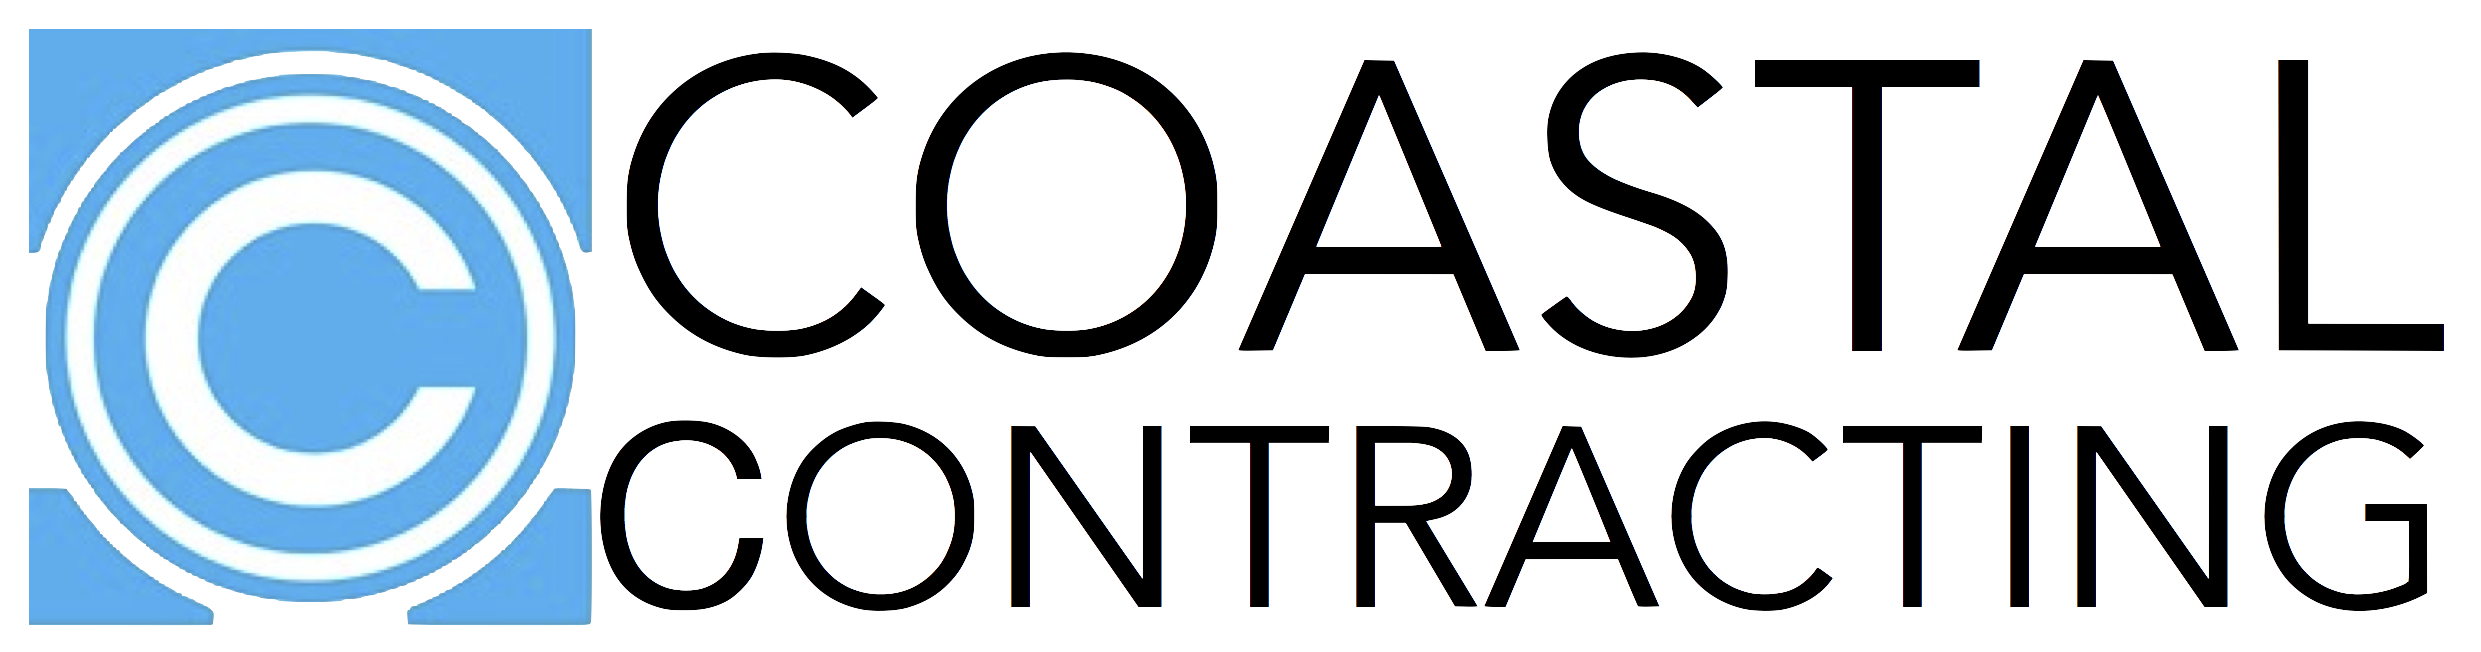 Coastal Contracting Logo.png